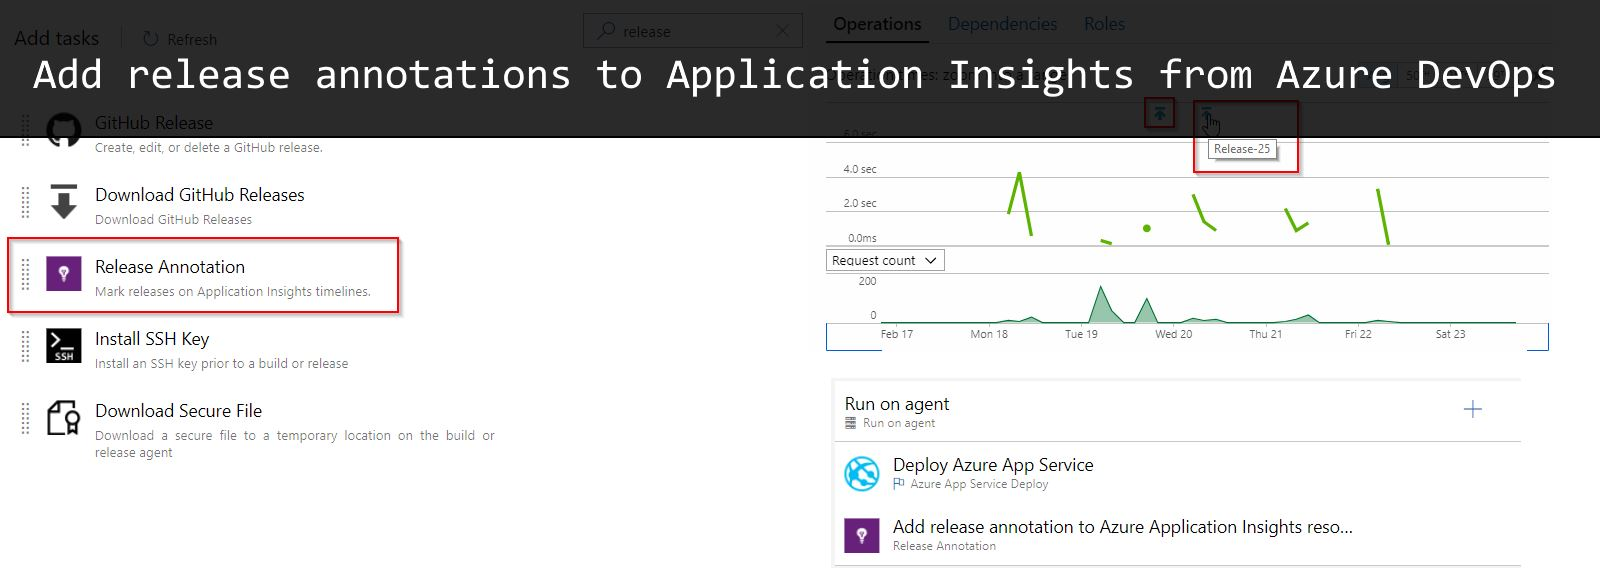 Add release annotations to Application Insights from Azure DevOps